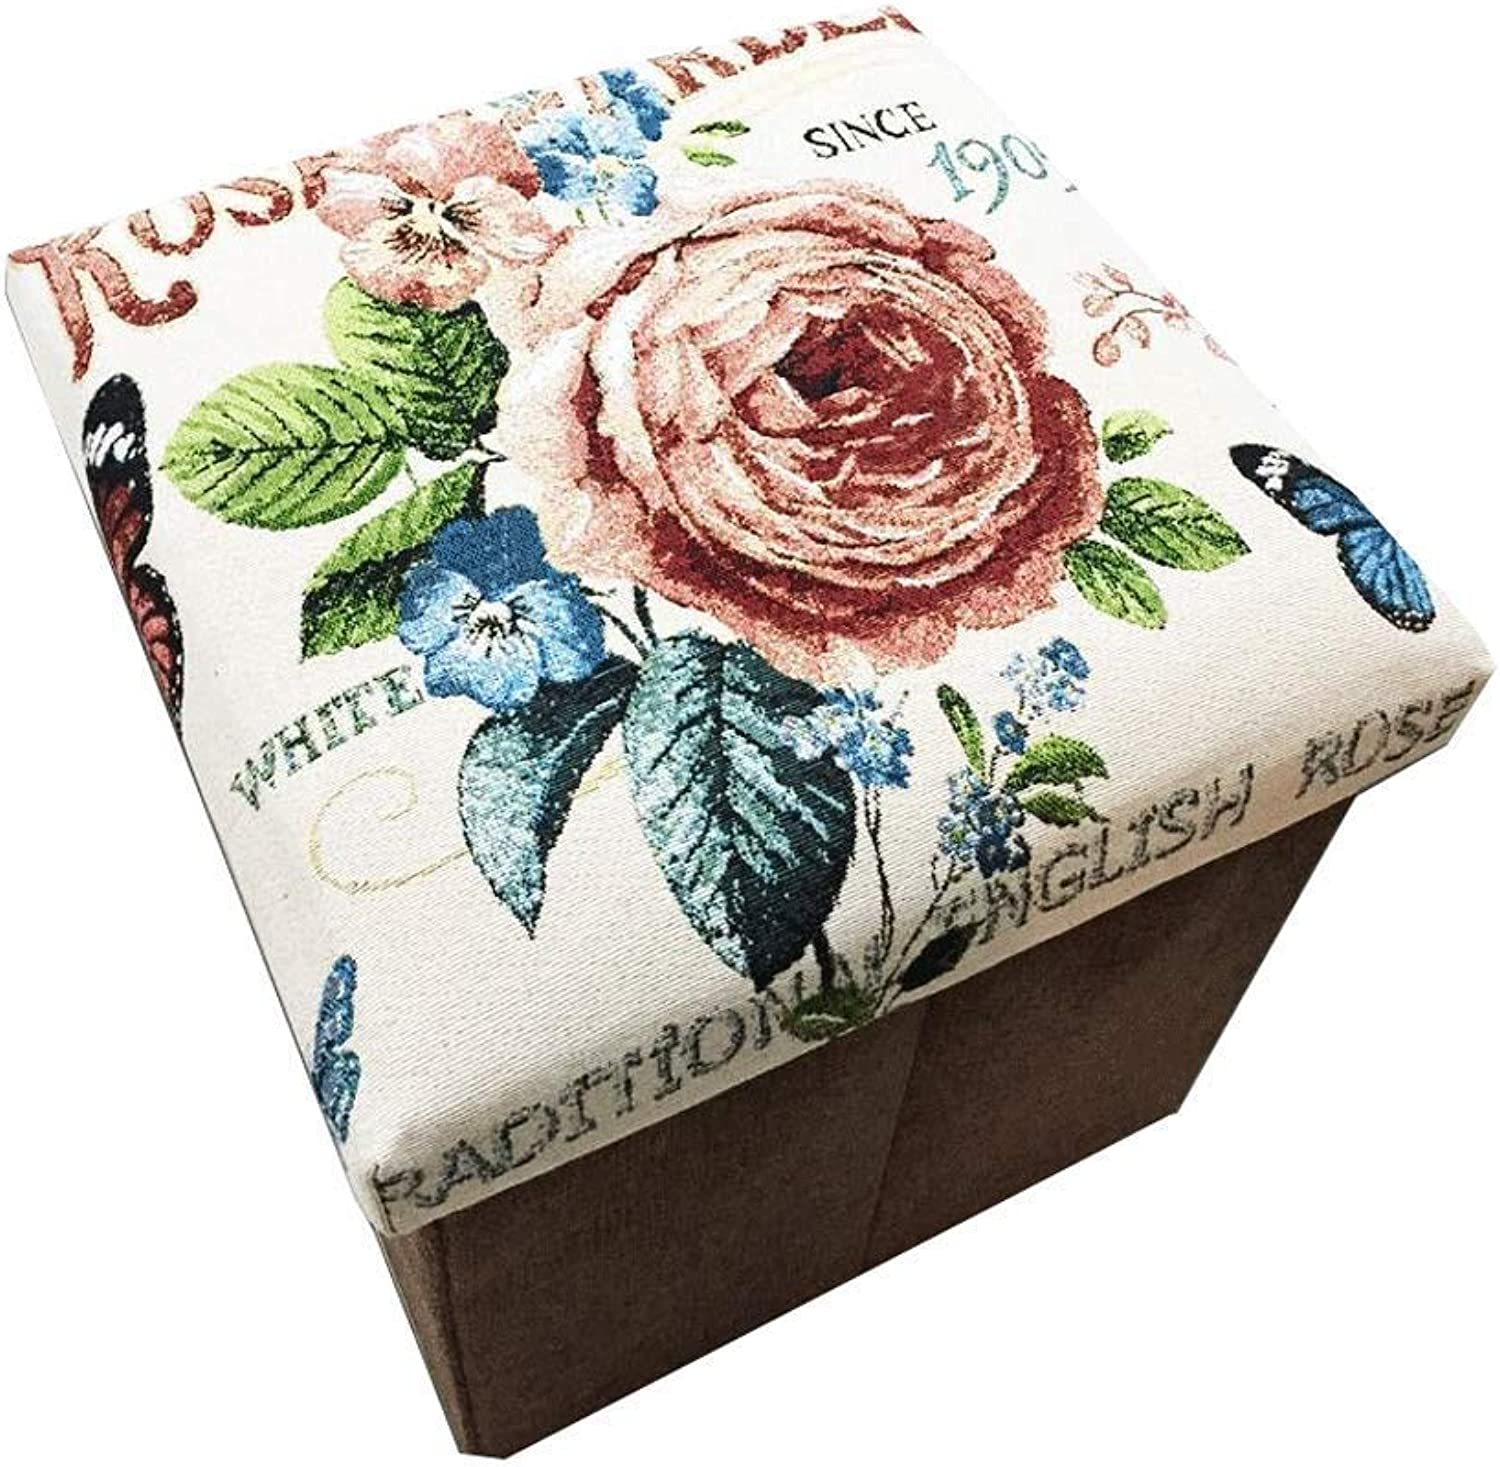 Cotton and Linen Footstool Large Capacity Storage Foldable Design Fine Workmanship Storage Stool 32X32X30CM Haiming (color   C, Size   32X32X30CM)